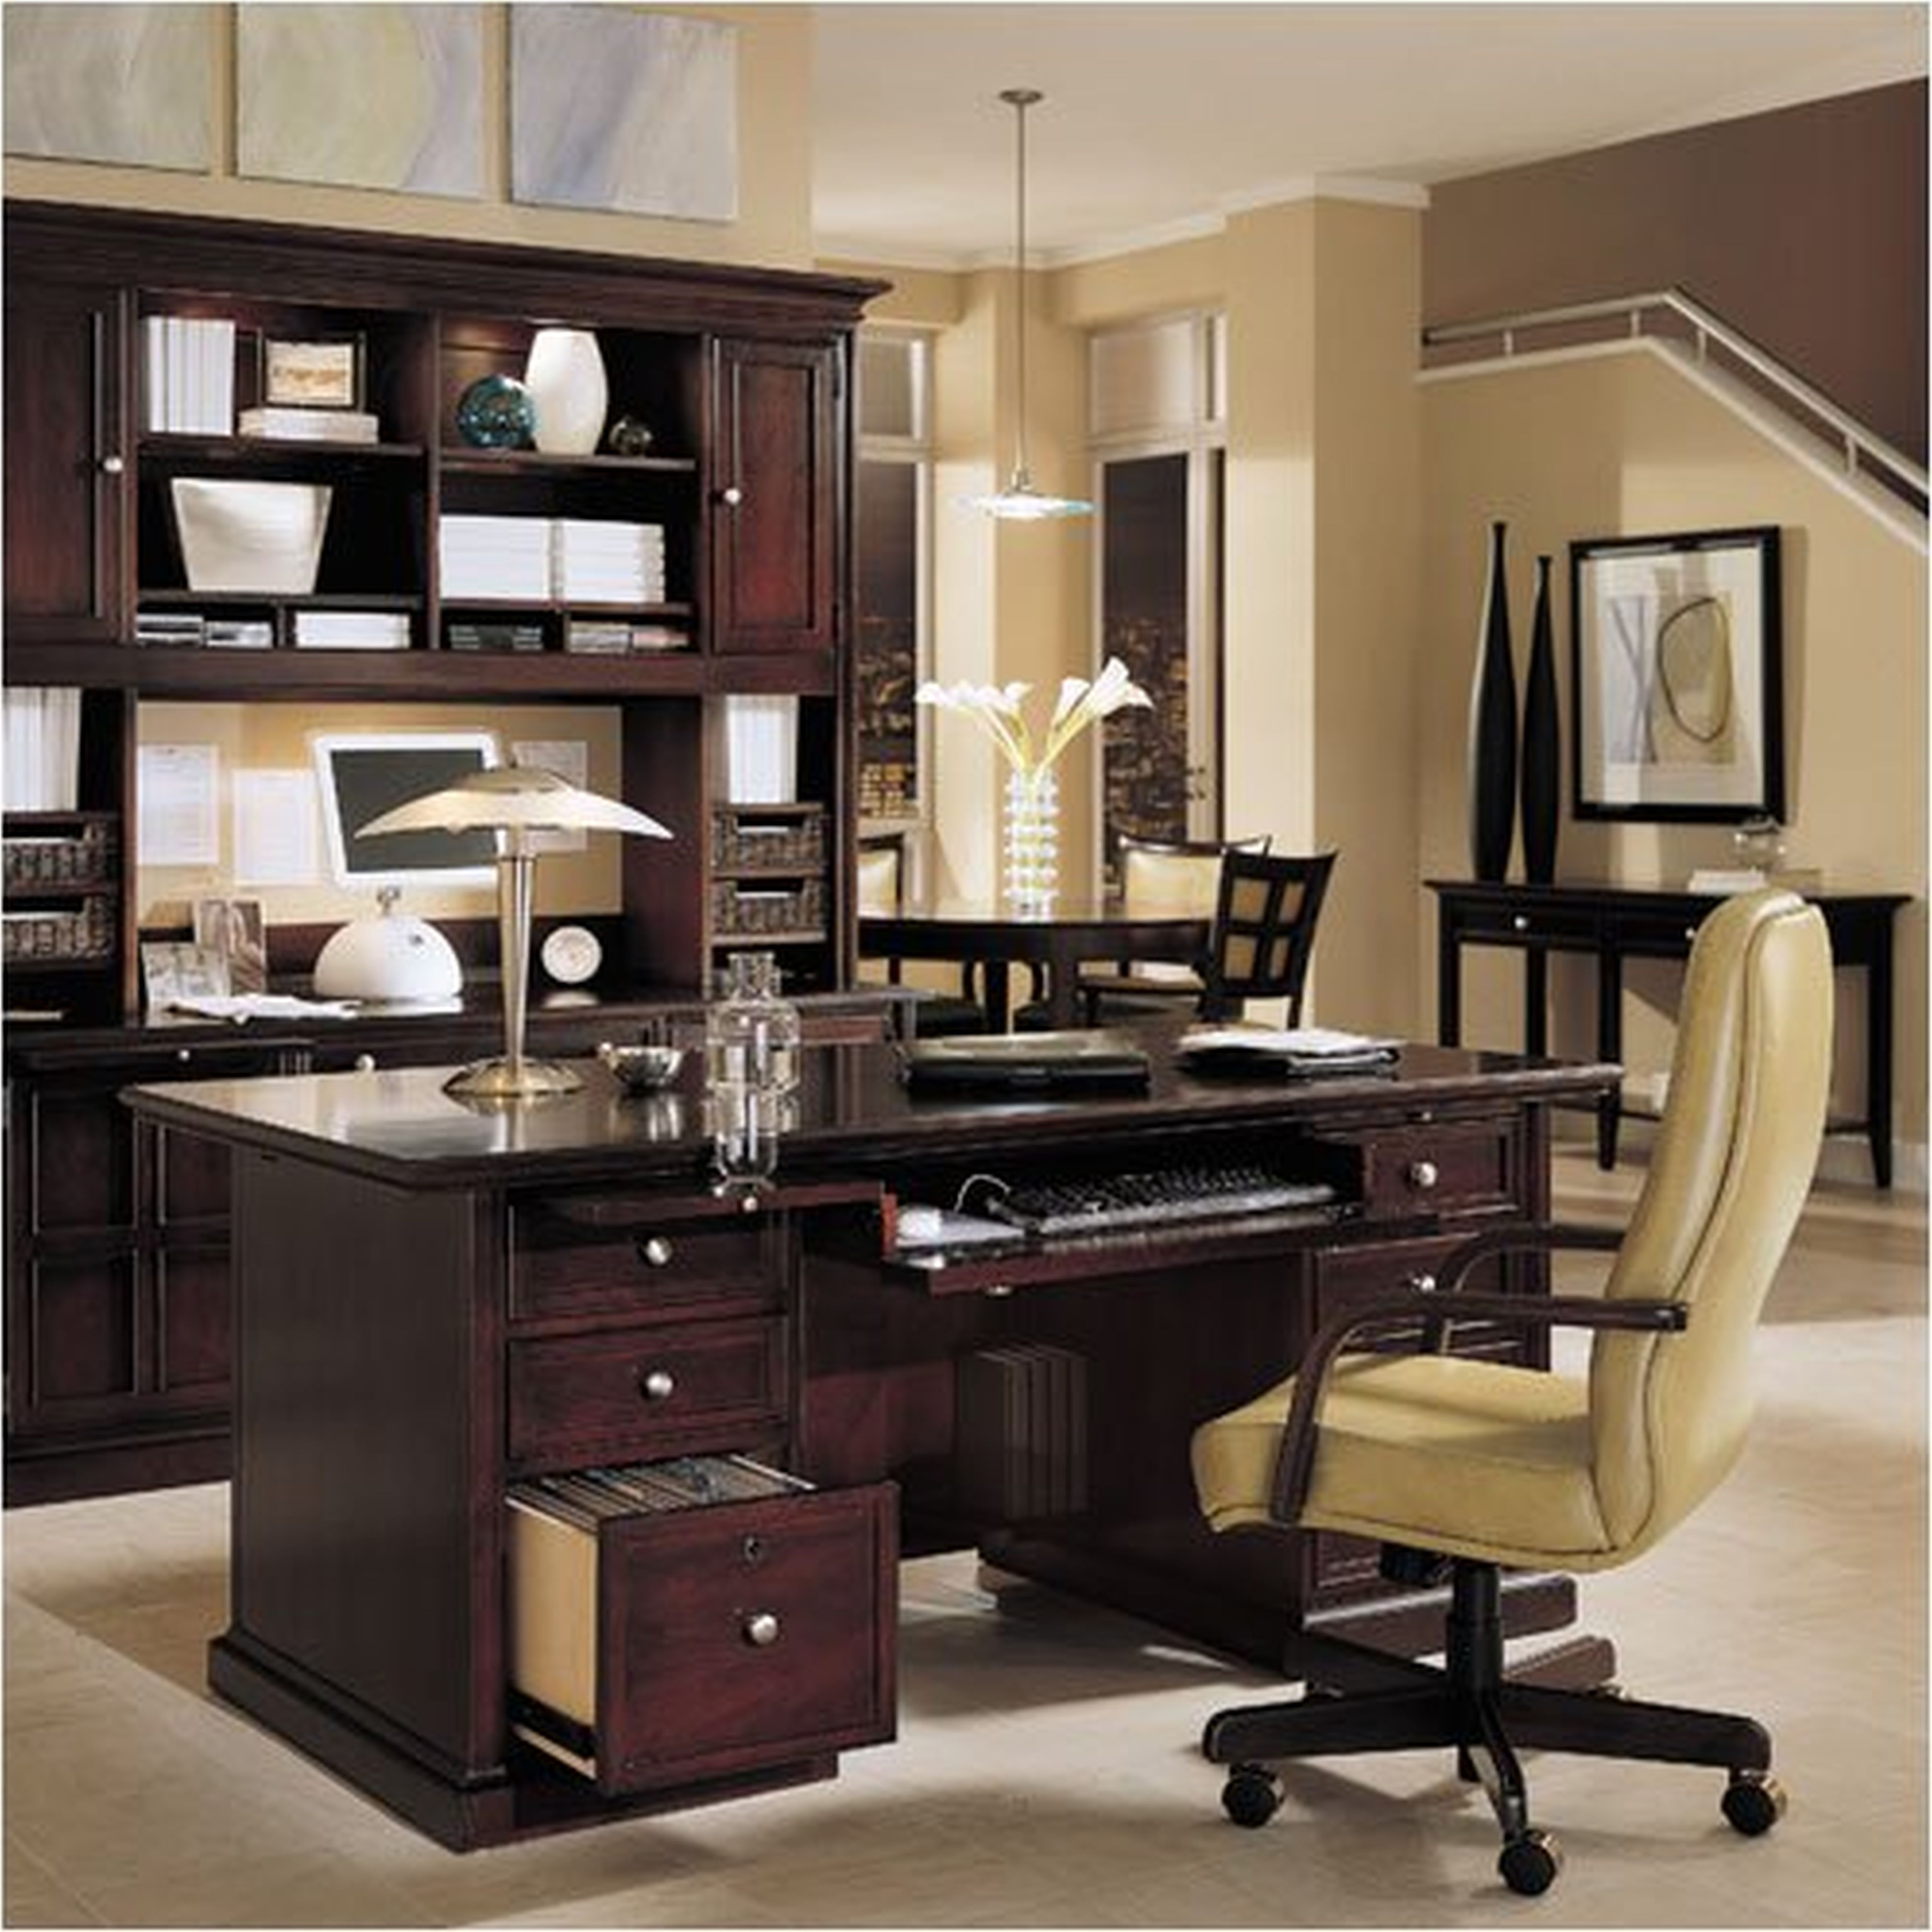 Interior Designs Astounding Fresh Small Business Office Decorating Ideas 2706 And Office Decorating Ideas It Is A Simple Logic That Small Office Den